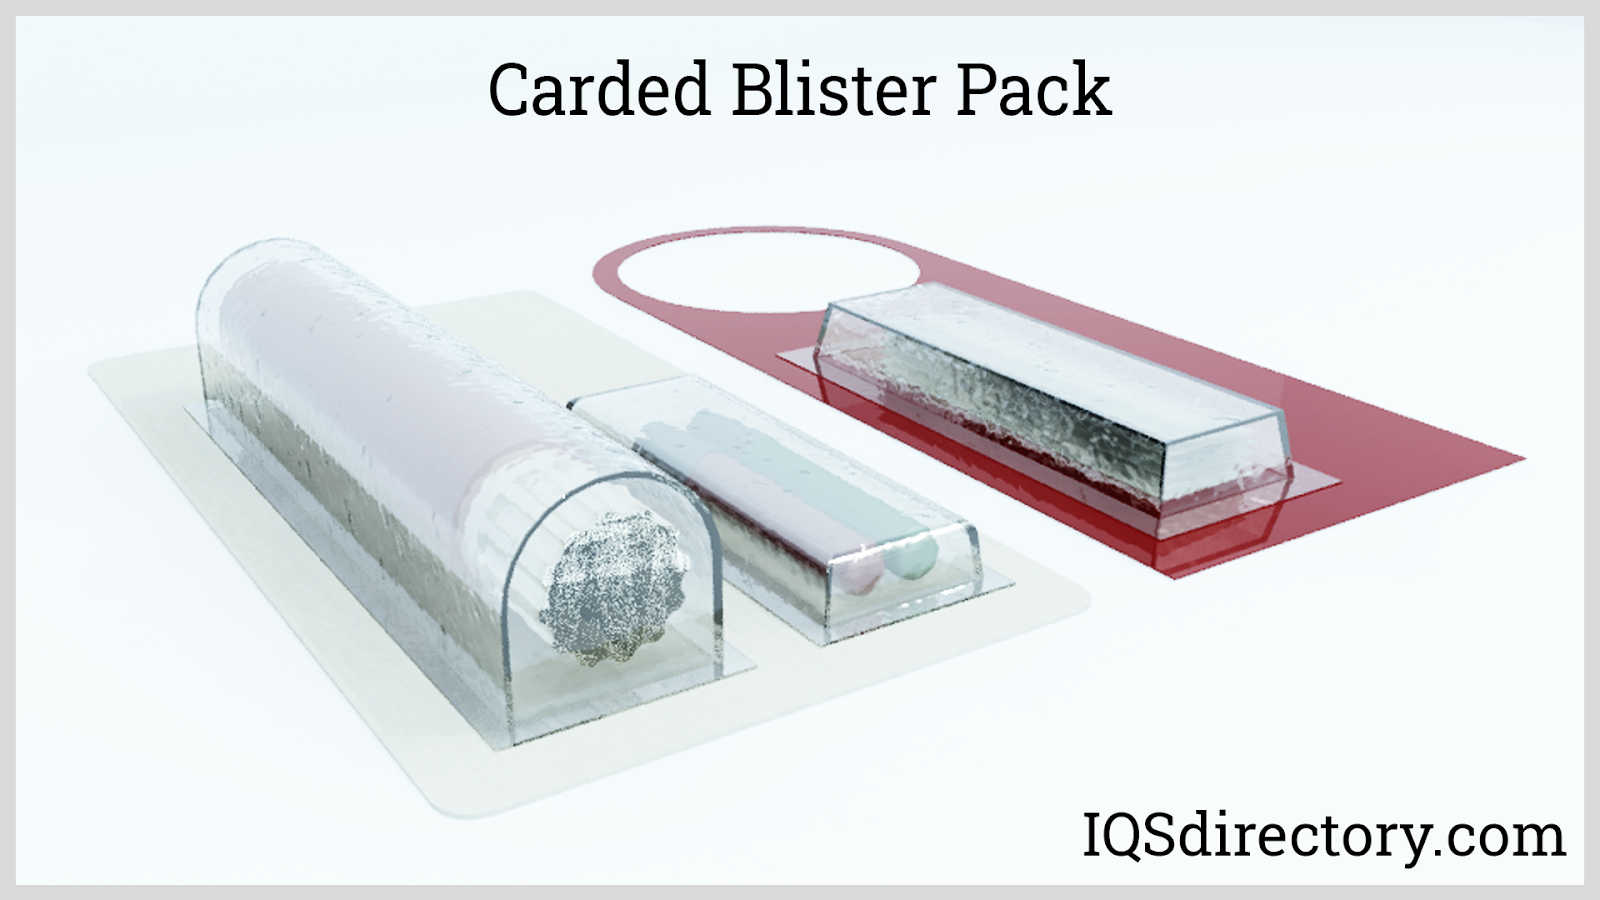 Carded Blister Pack